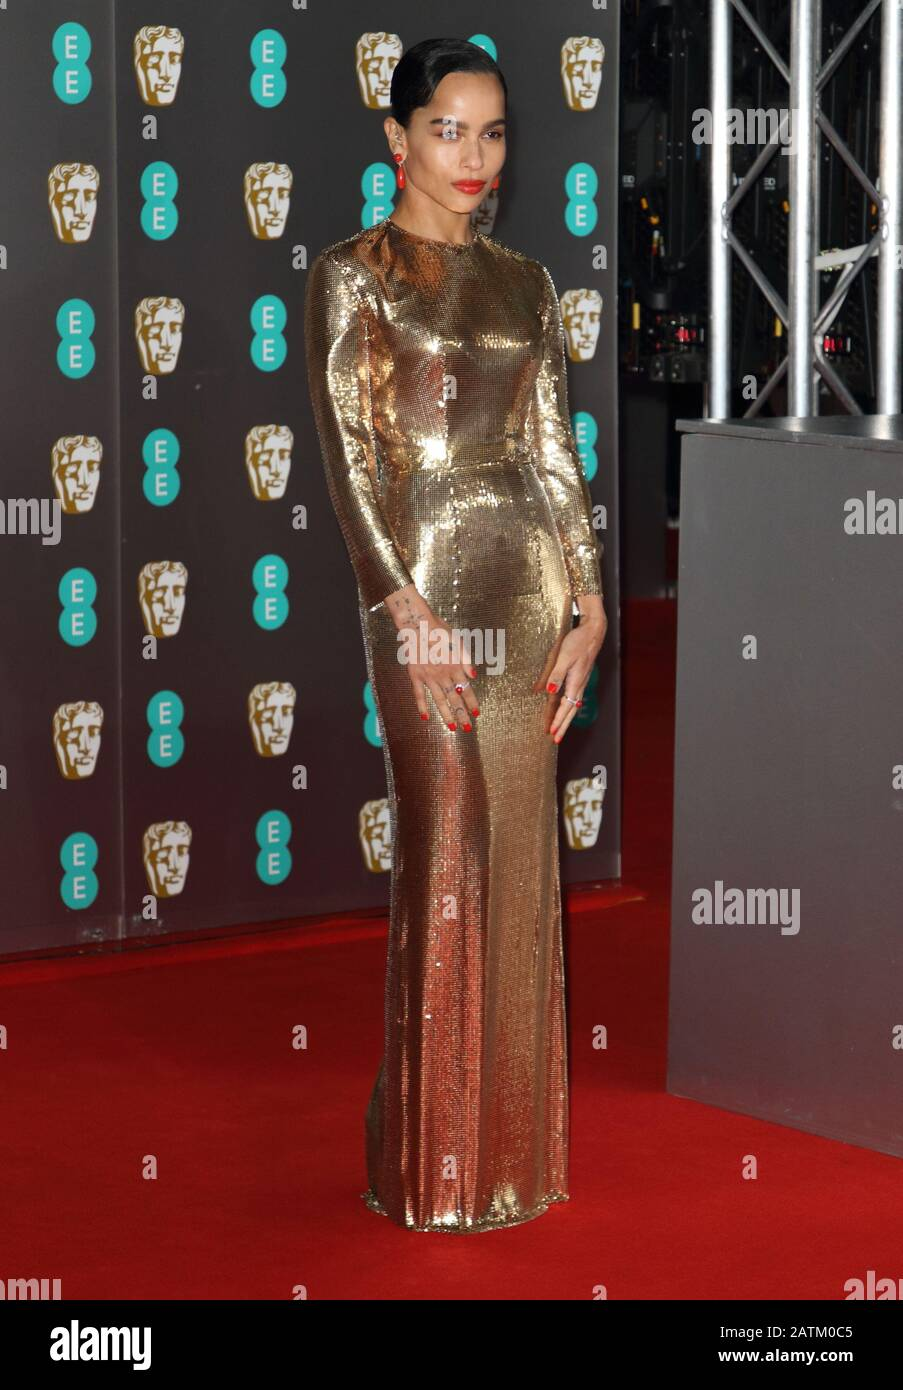 Zoe Kravitz Attends The Bafta British Academy Film Awards At The Royal Albert Hall In London Stock Photo Alamy